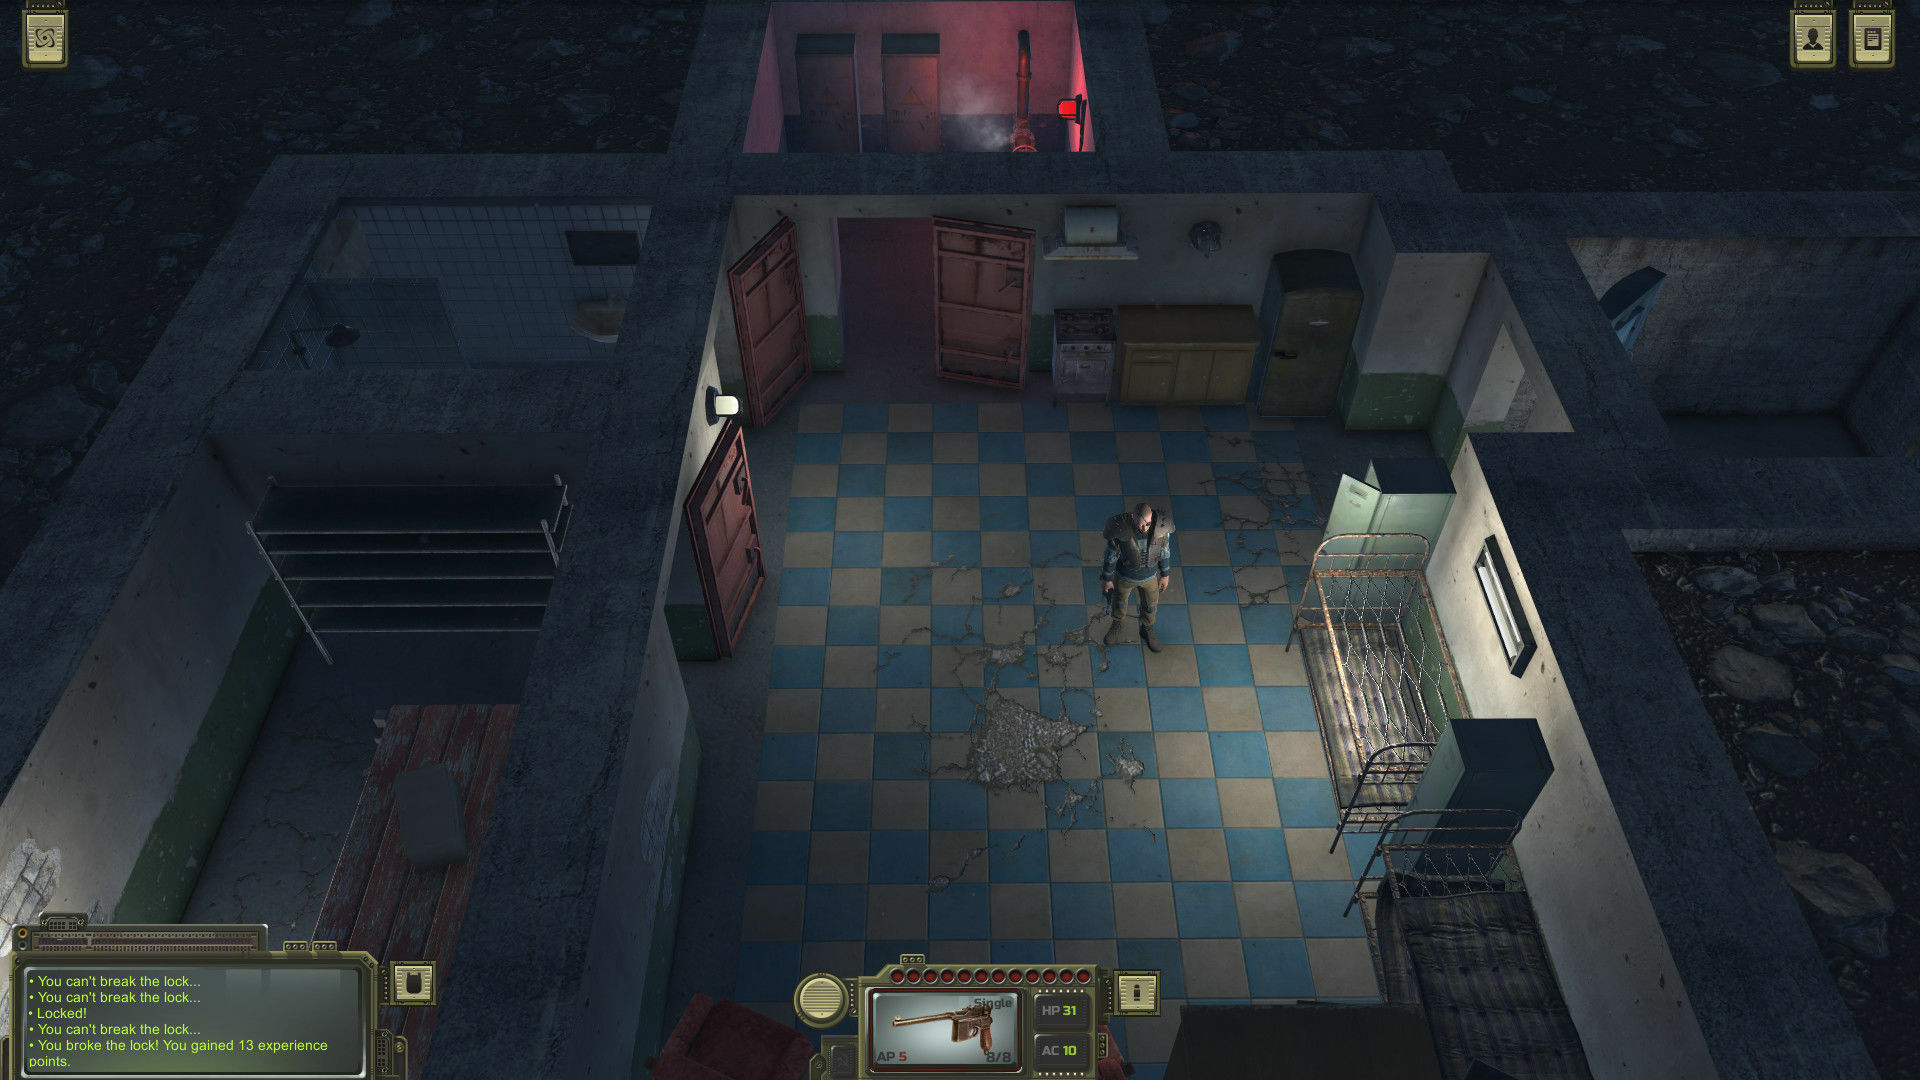 ATOM RPG: Post-apocalyptic indie game screenshot 2